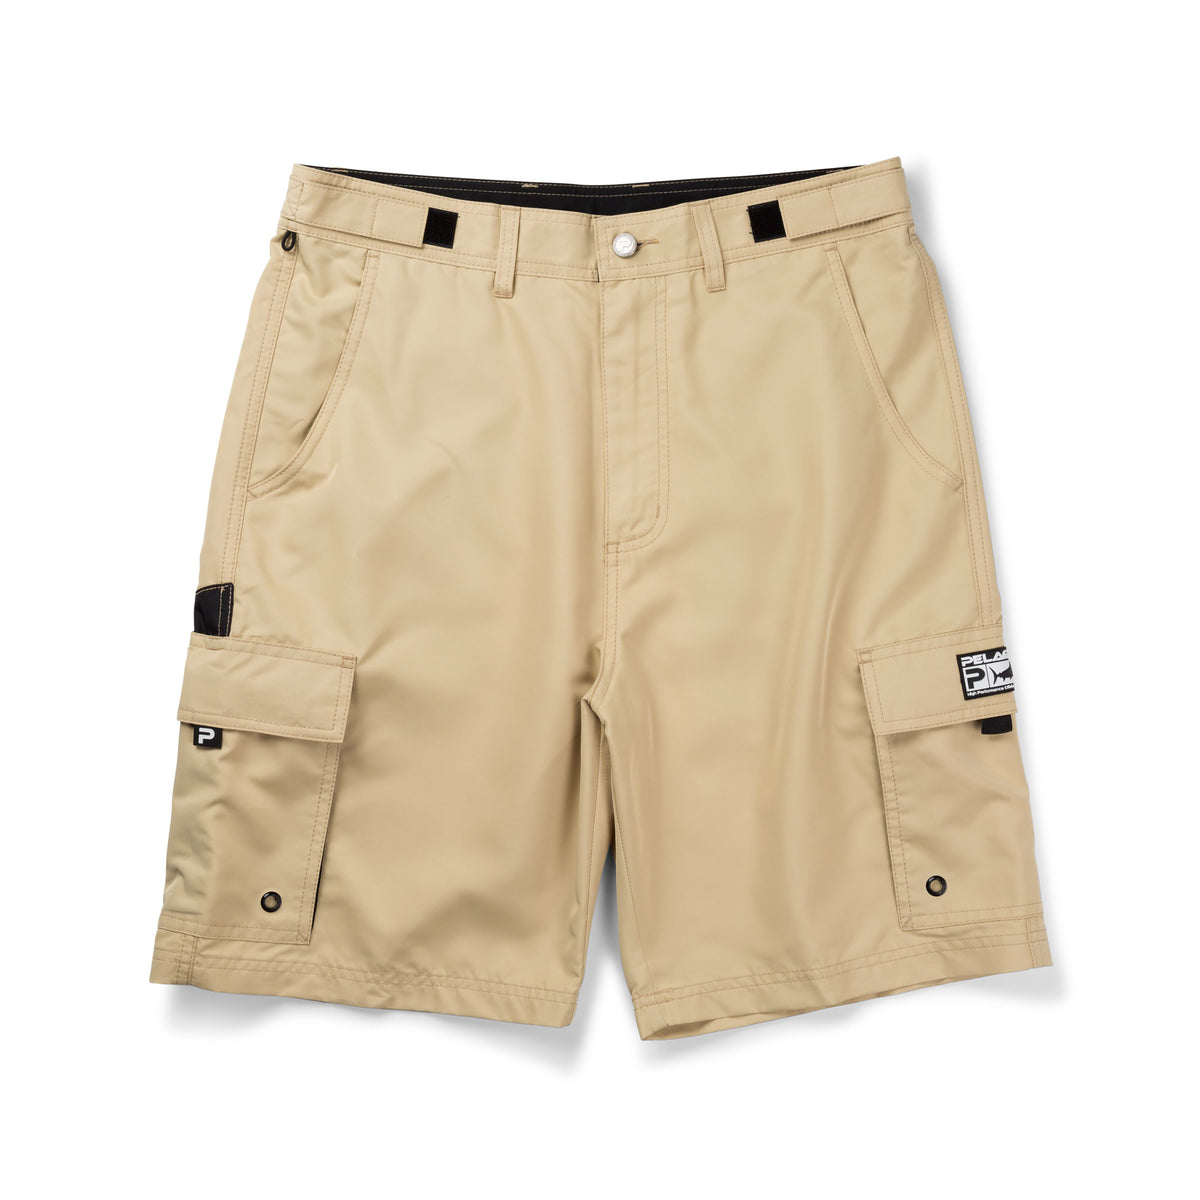 Socorro Fishing Shorts Big Image - 1